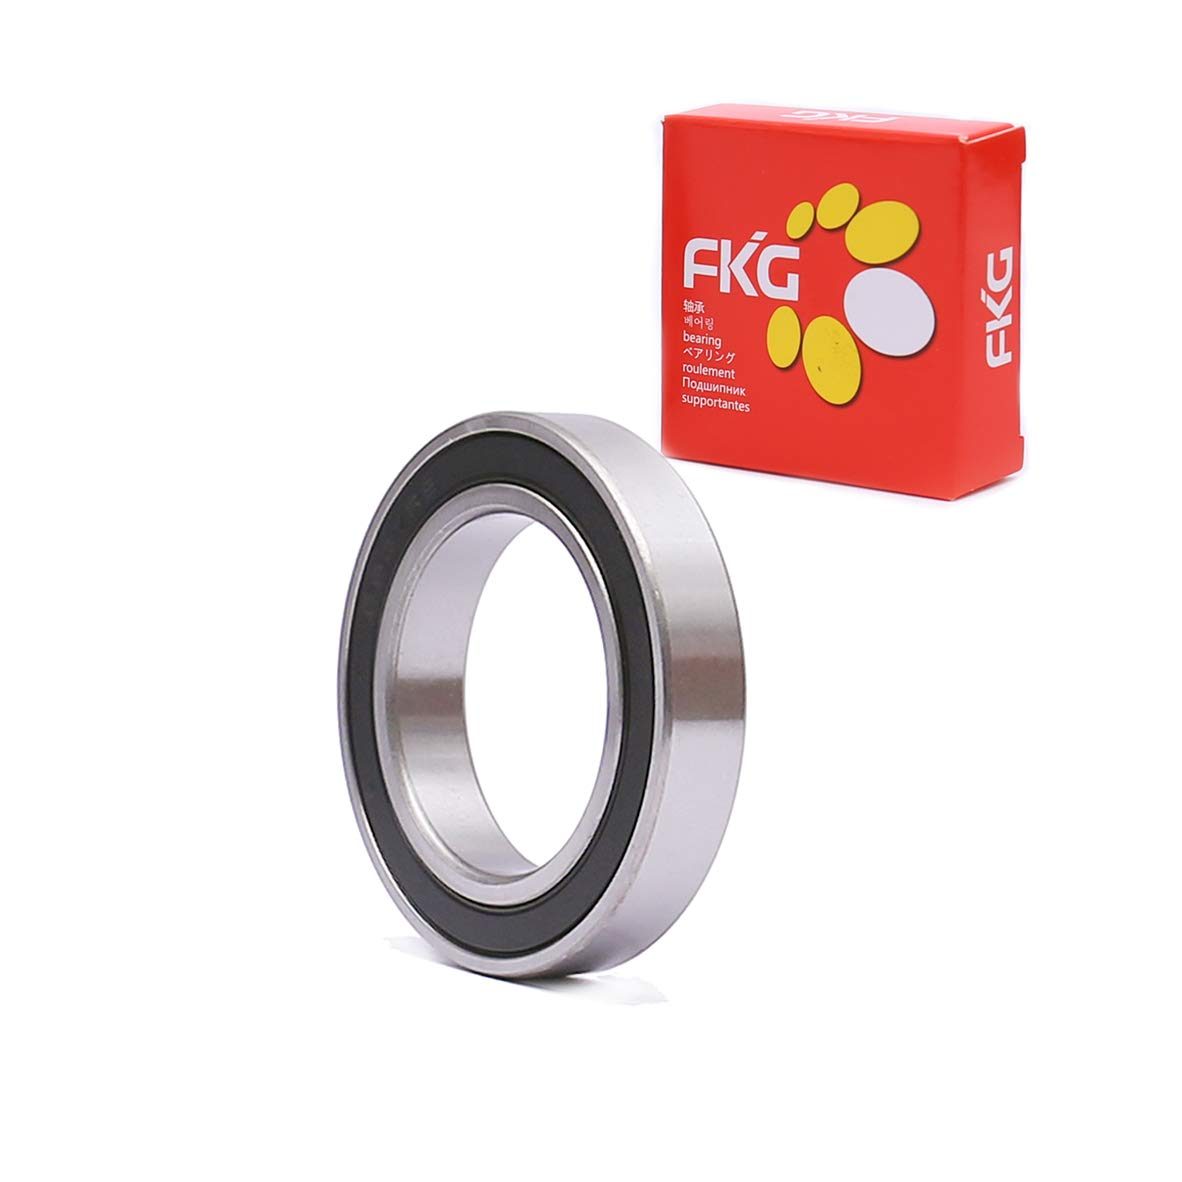 FKG 6907-2RS 35x55x10mm Deep Groove Ball Bearing Double Rubber Seal Bearings Pre-Lubricated 1 Pcs